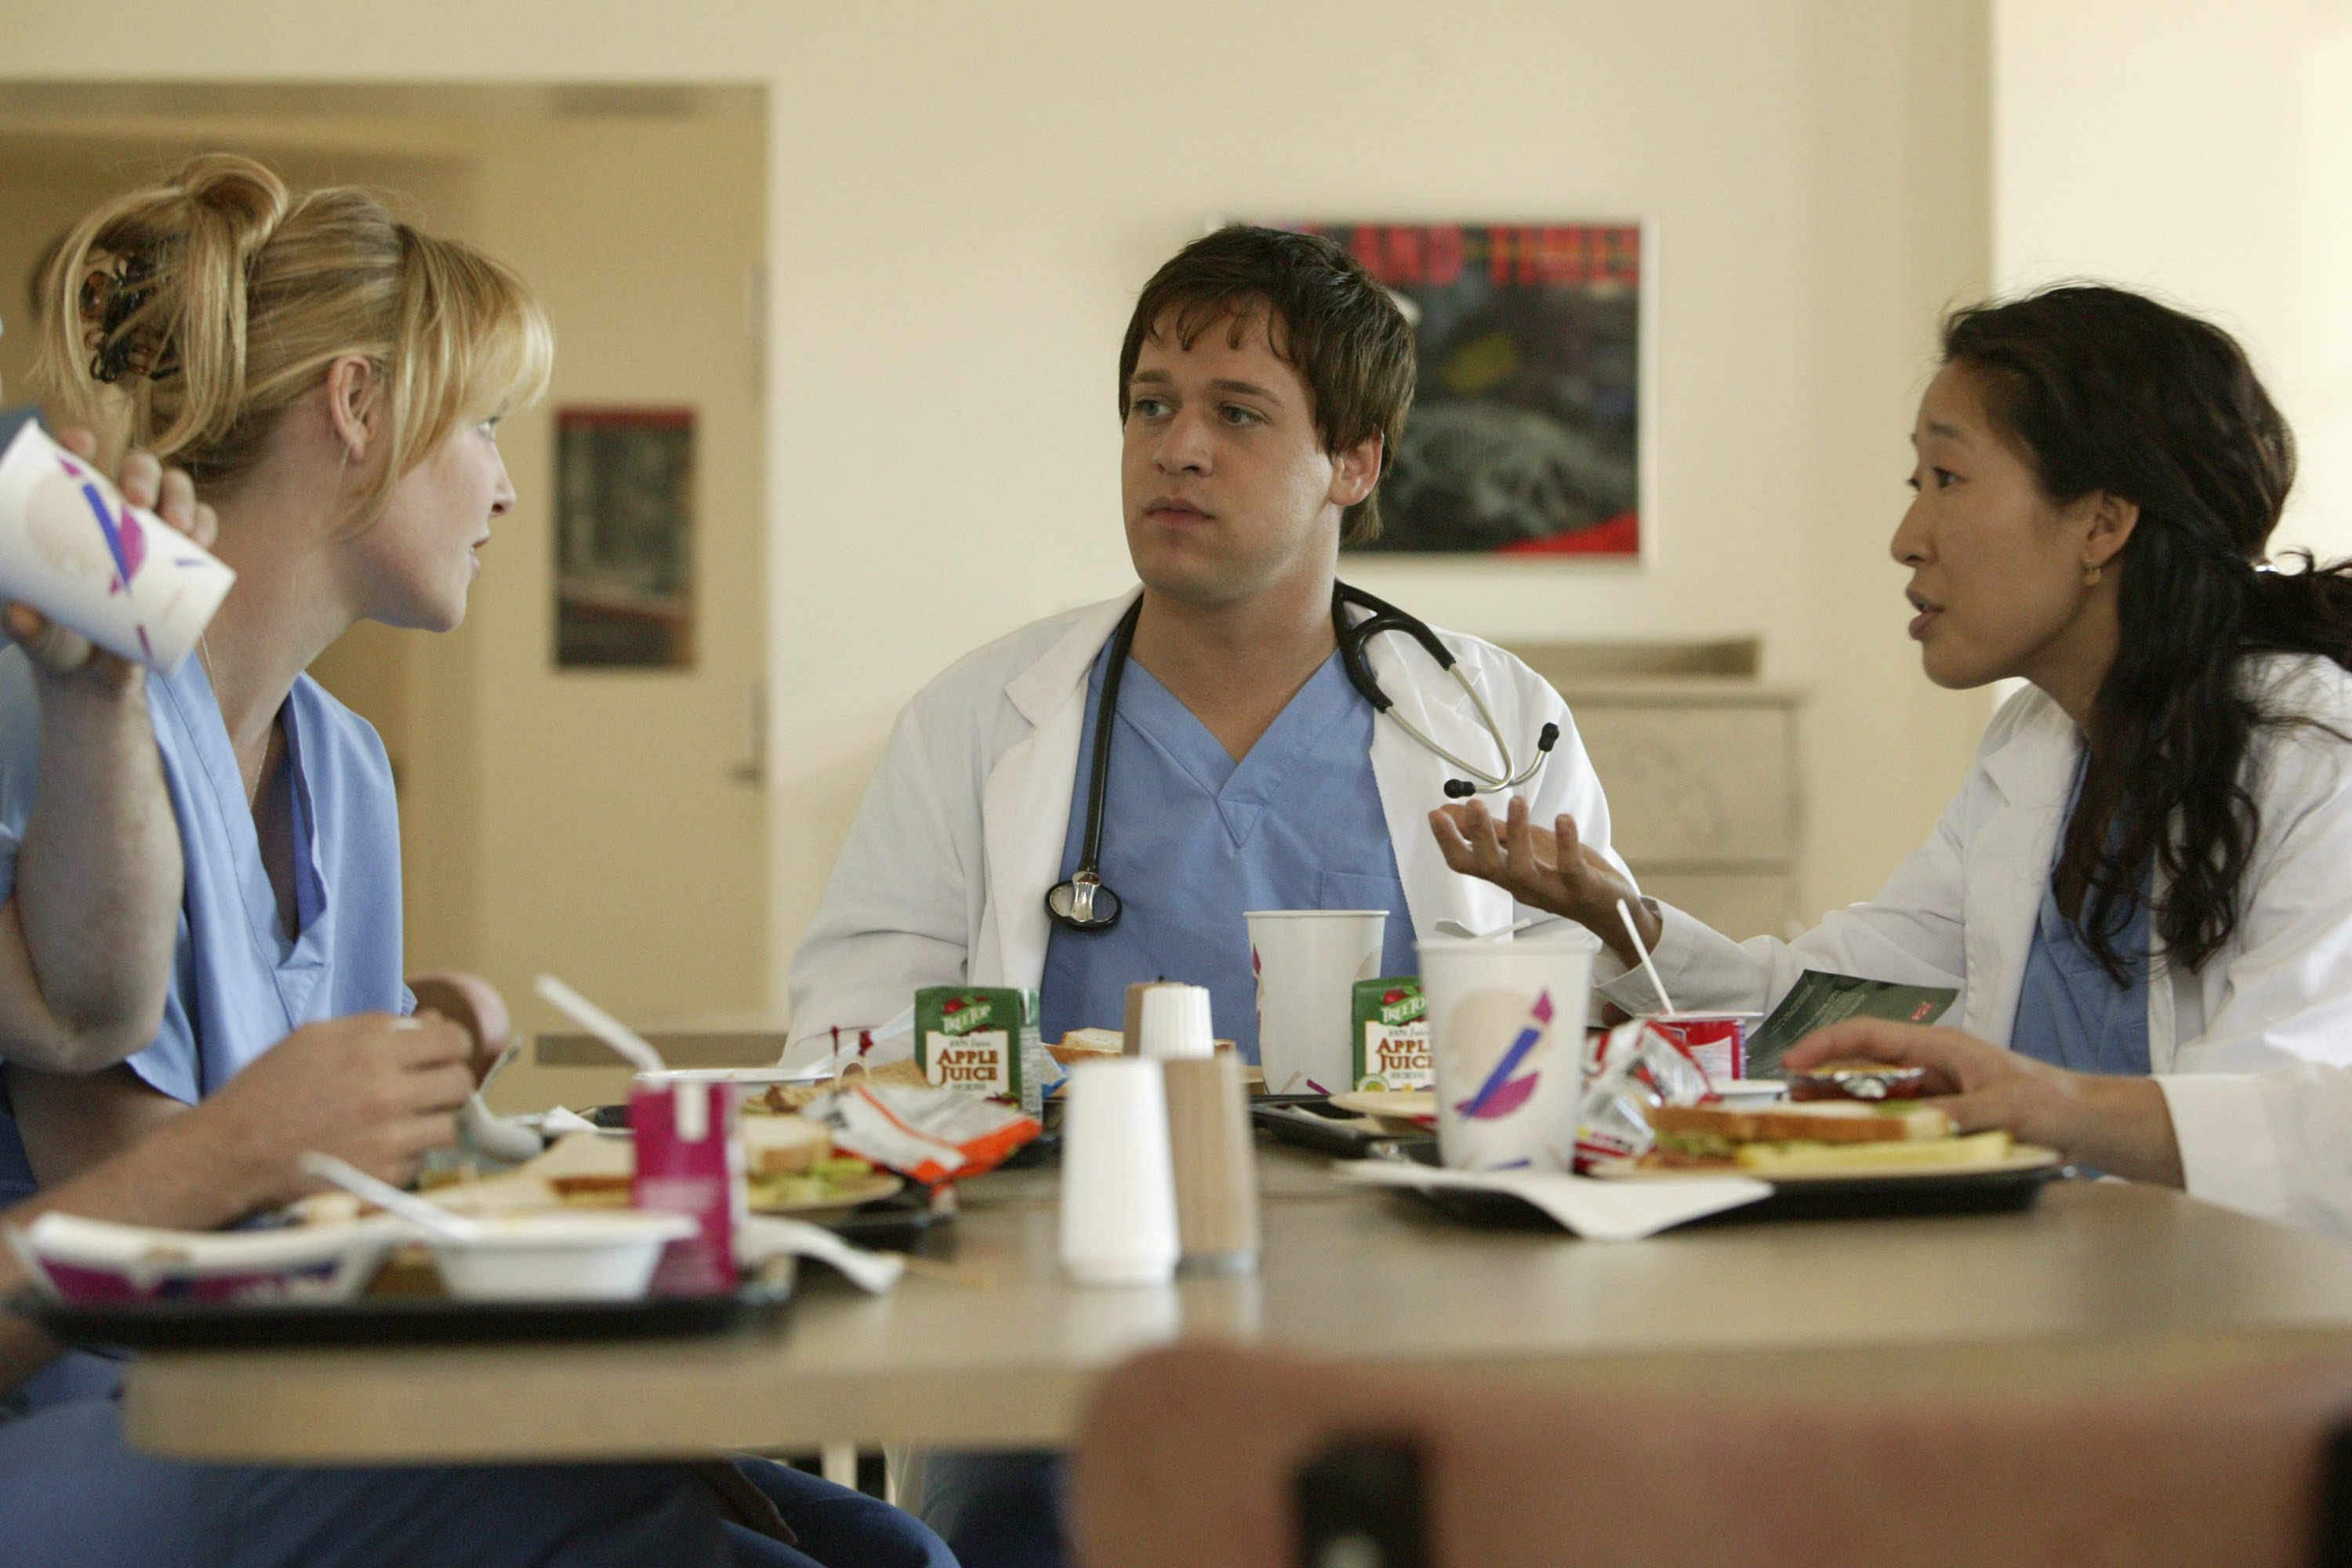 Image Source: Getty Images/Grey's Anatomy/ABC